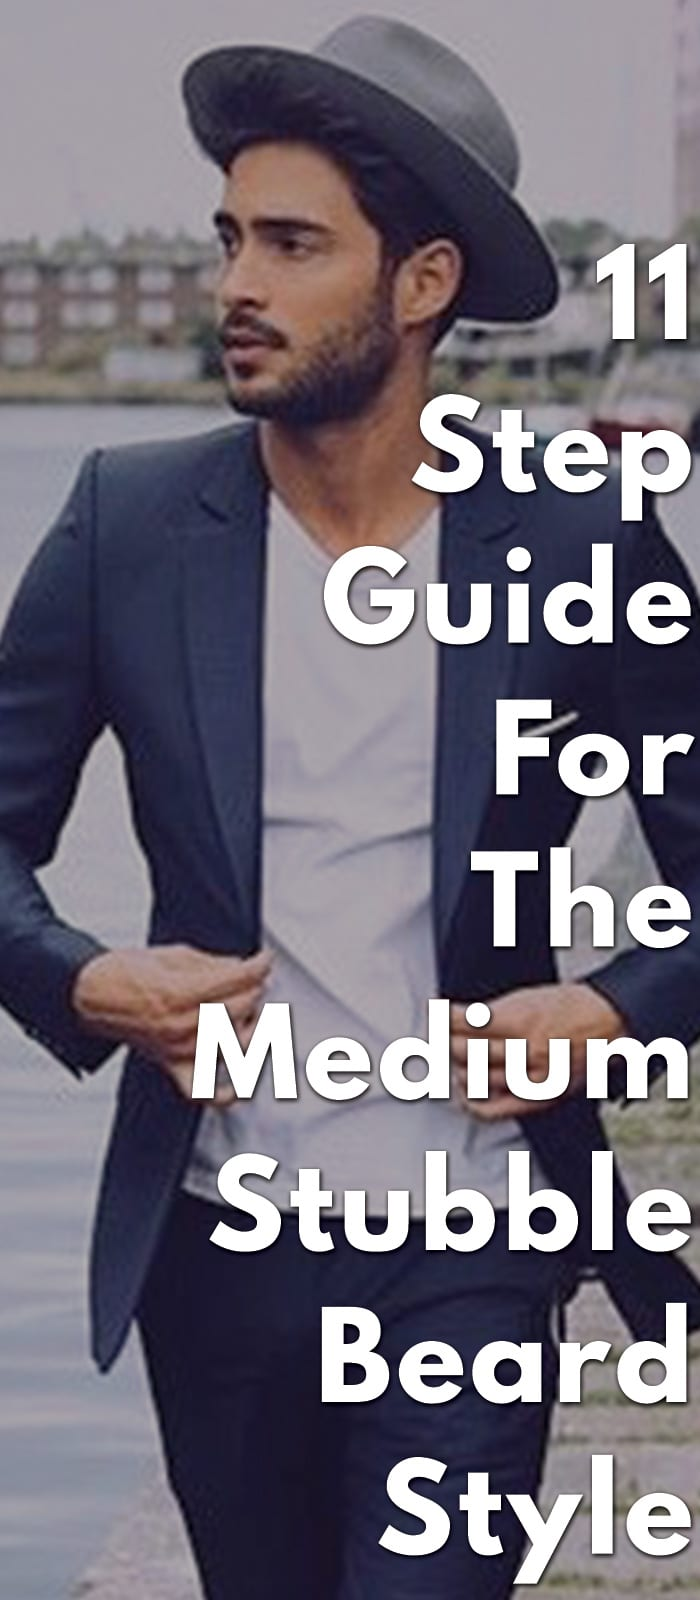 11-Step-Guide-For-The-Medium-Stubble-Beard-Style